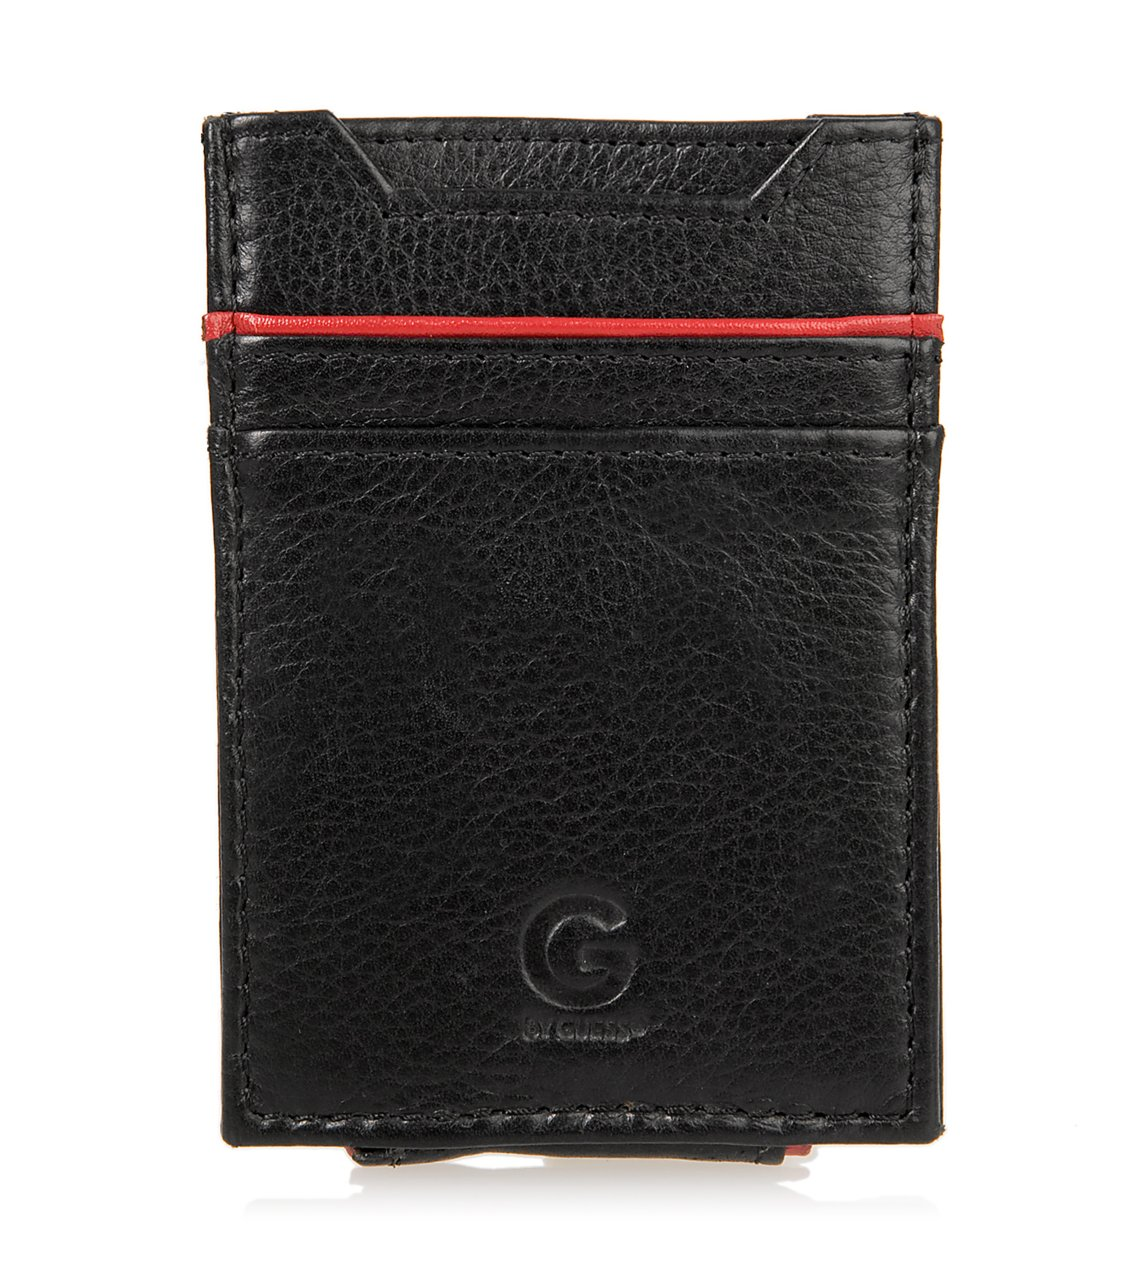 G by GUESS Front-Pocket Wallet with Money Clip, BLACK